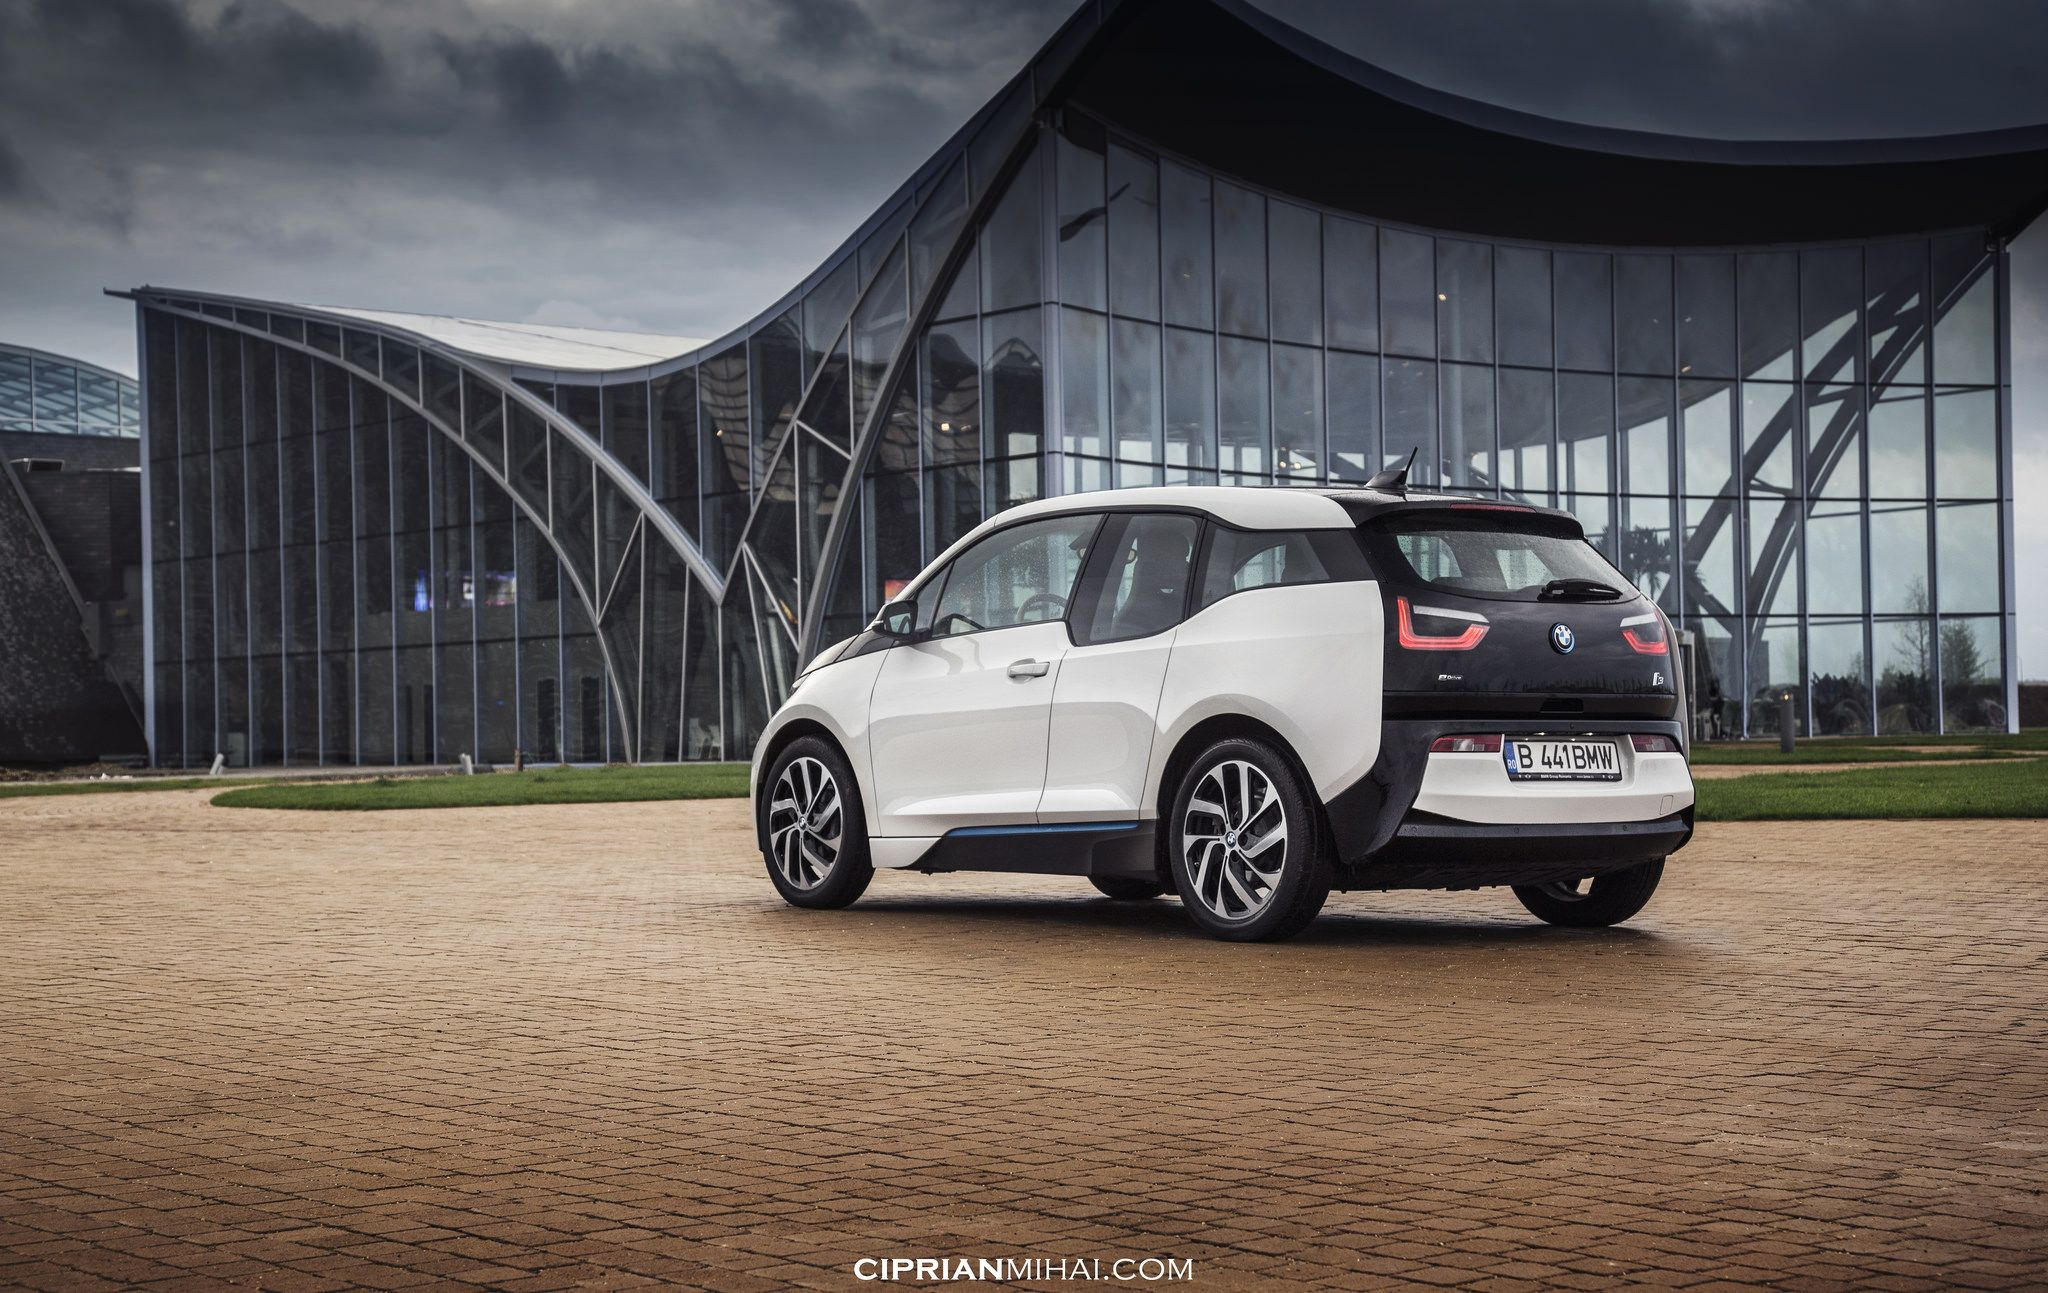 #BMW #i3 #eDrive #Burn #Electric #Fresh #Air #Green #City #Live #Life #Love #Follow #Your #heart #BMWLife